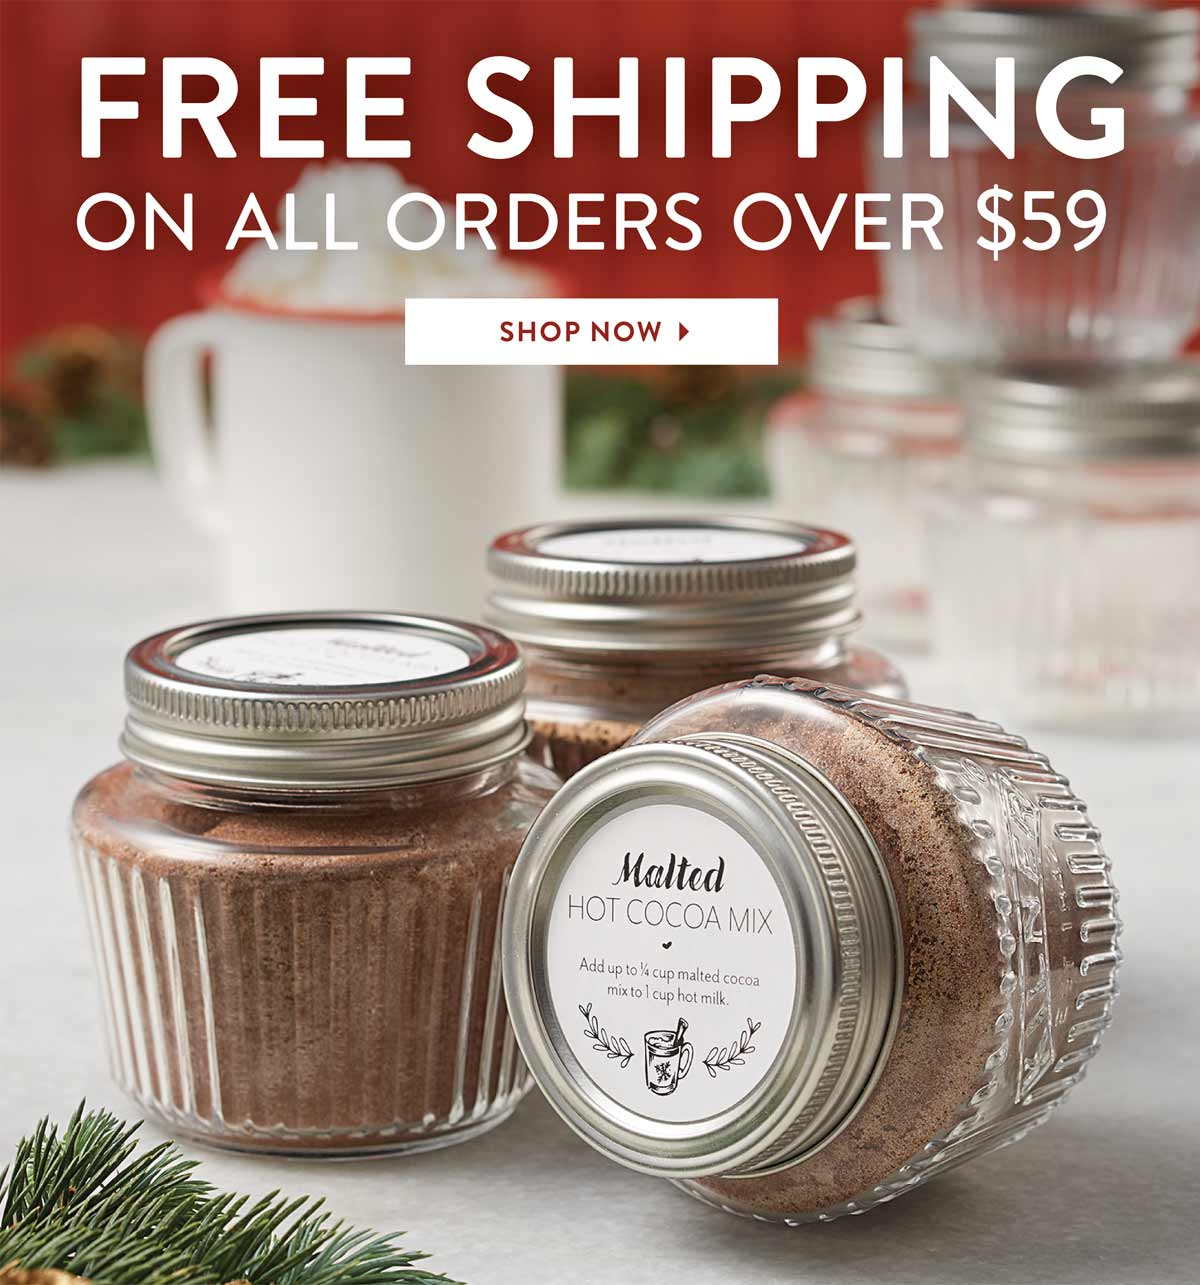 Free Shipping on orders over $59